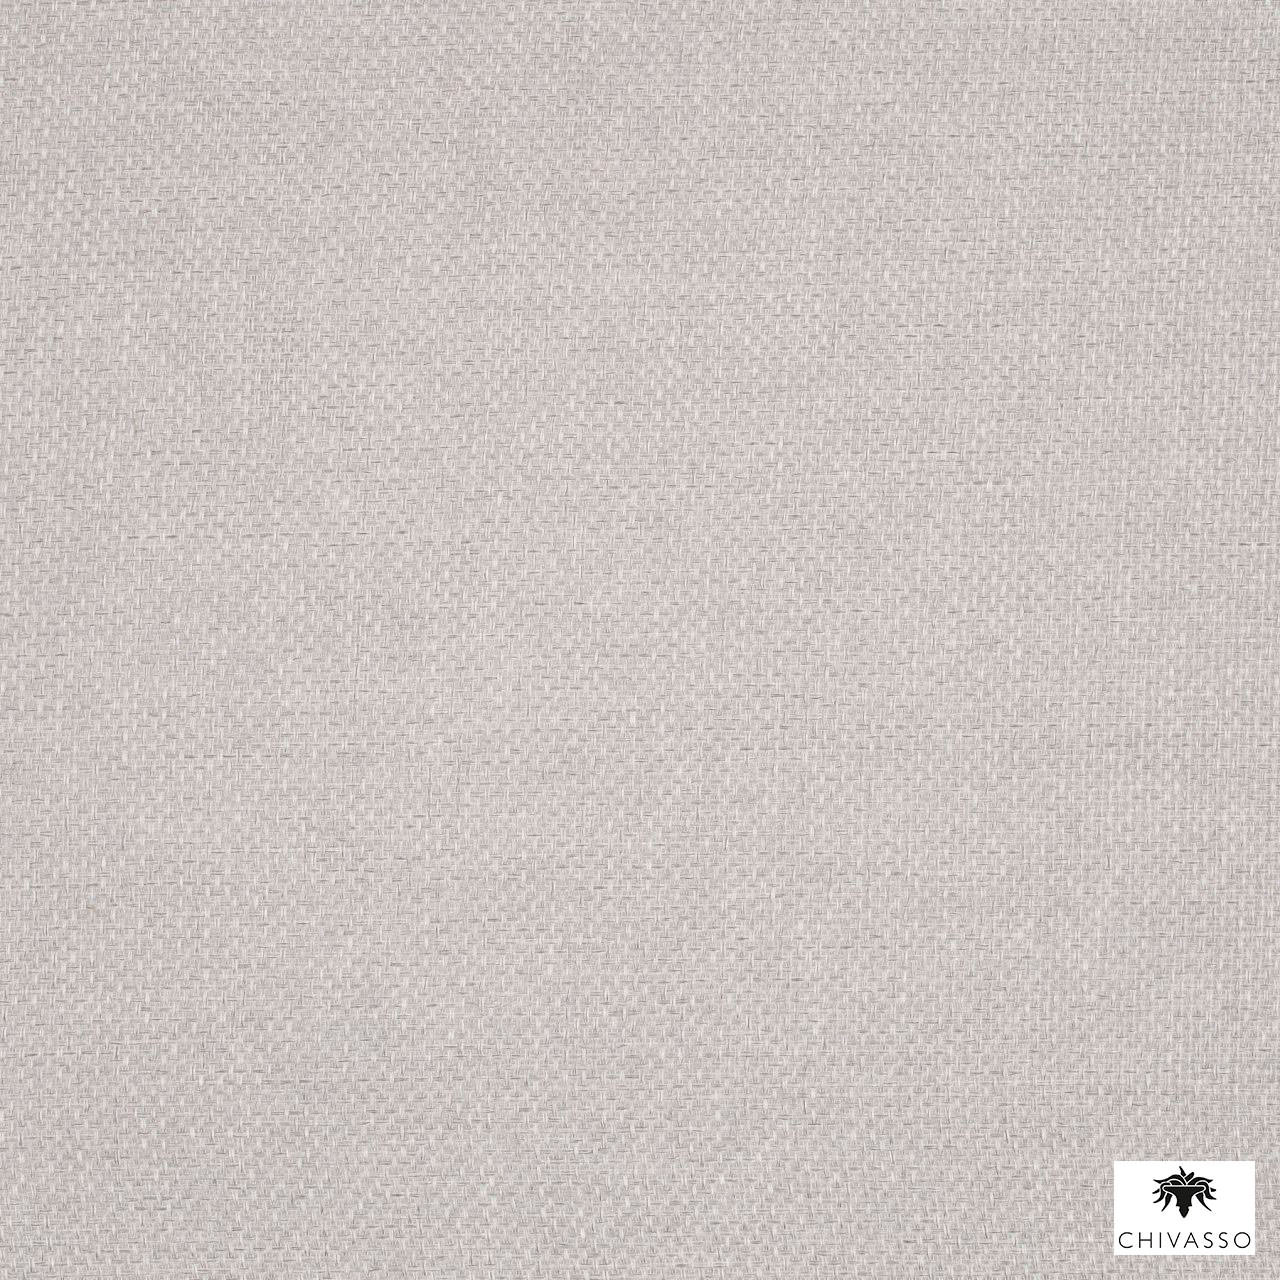 Chivasso - Twinkle - Ch2740-091  | Curtain Fabric - Grey, Plain, Synthetic, Domestic Use, Railroaded, Wide Width